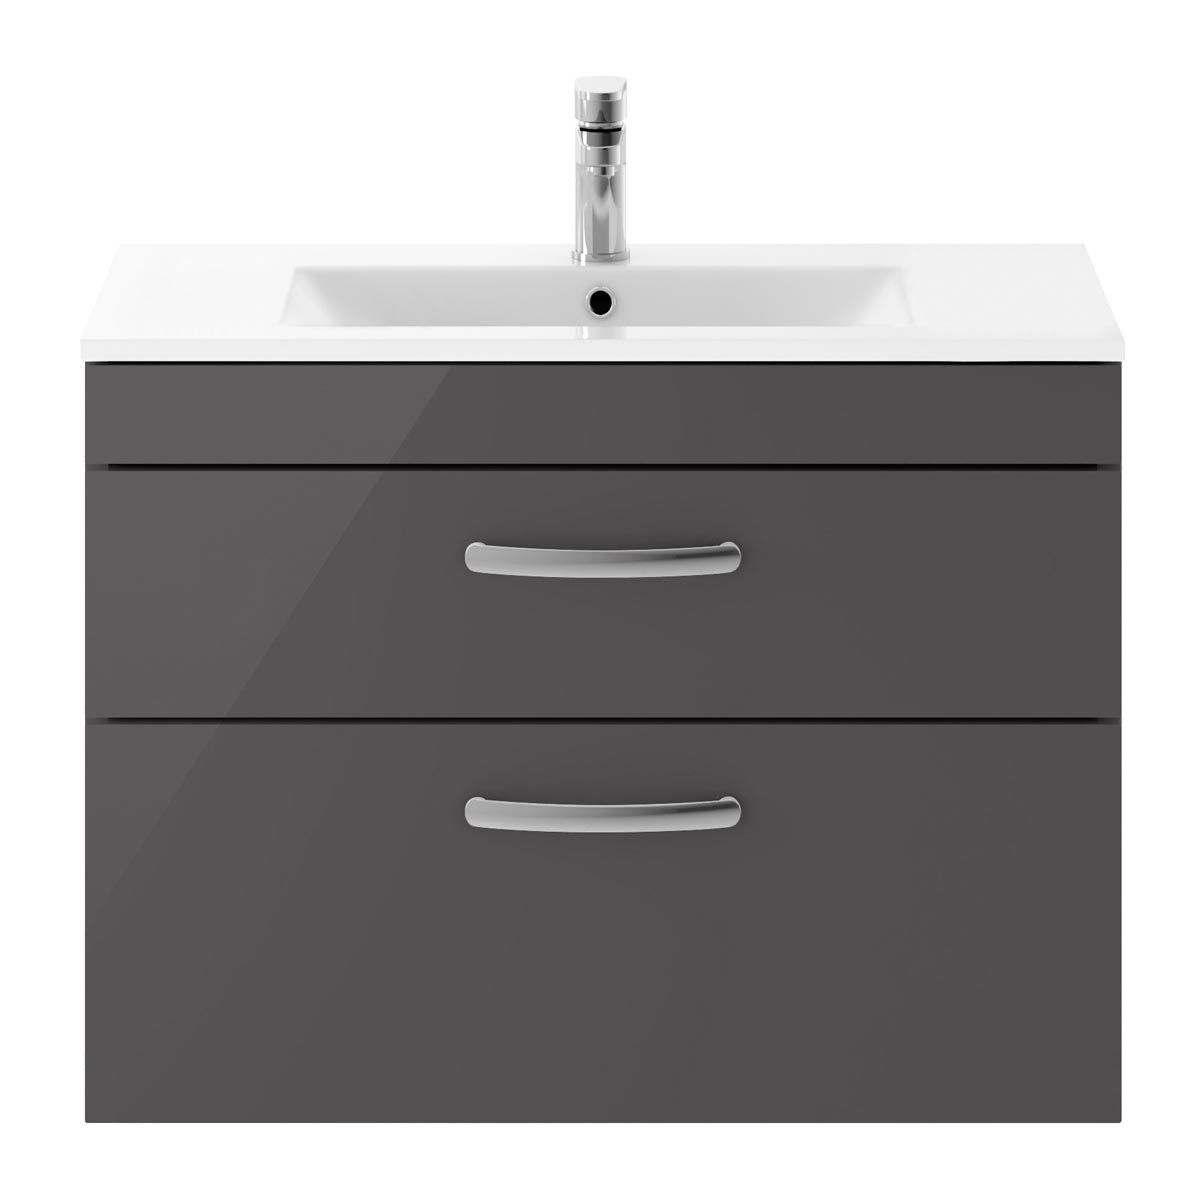 Nuie Athena Gloss Grey 2 Drawer Wall Hung Vanity Unit with 18mm Profile Basin 800mm